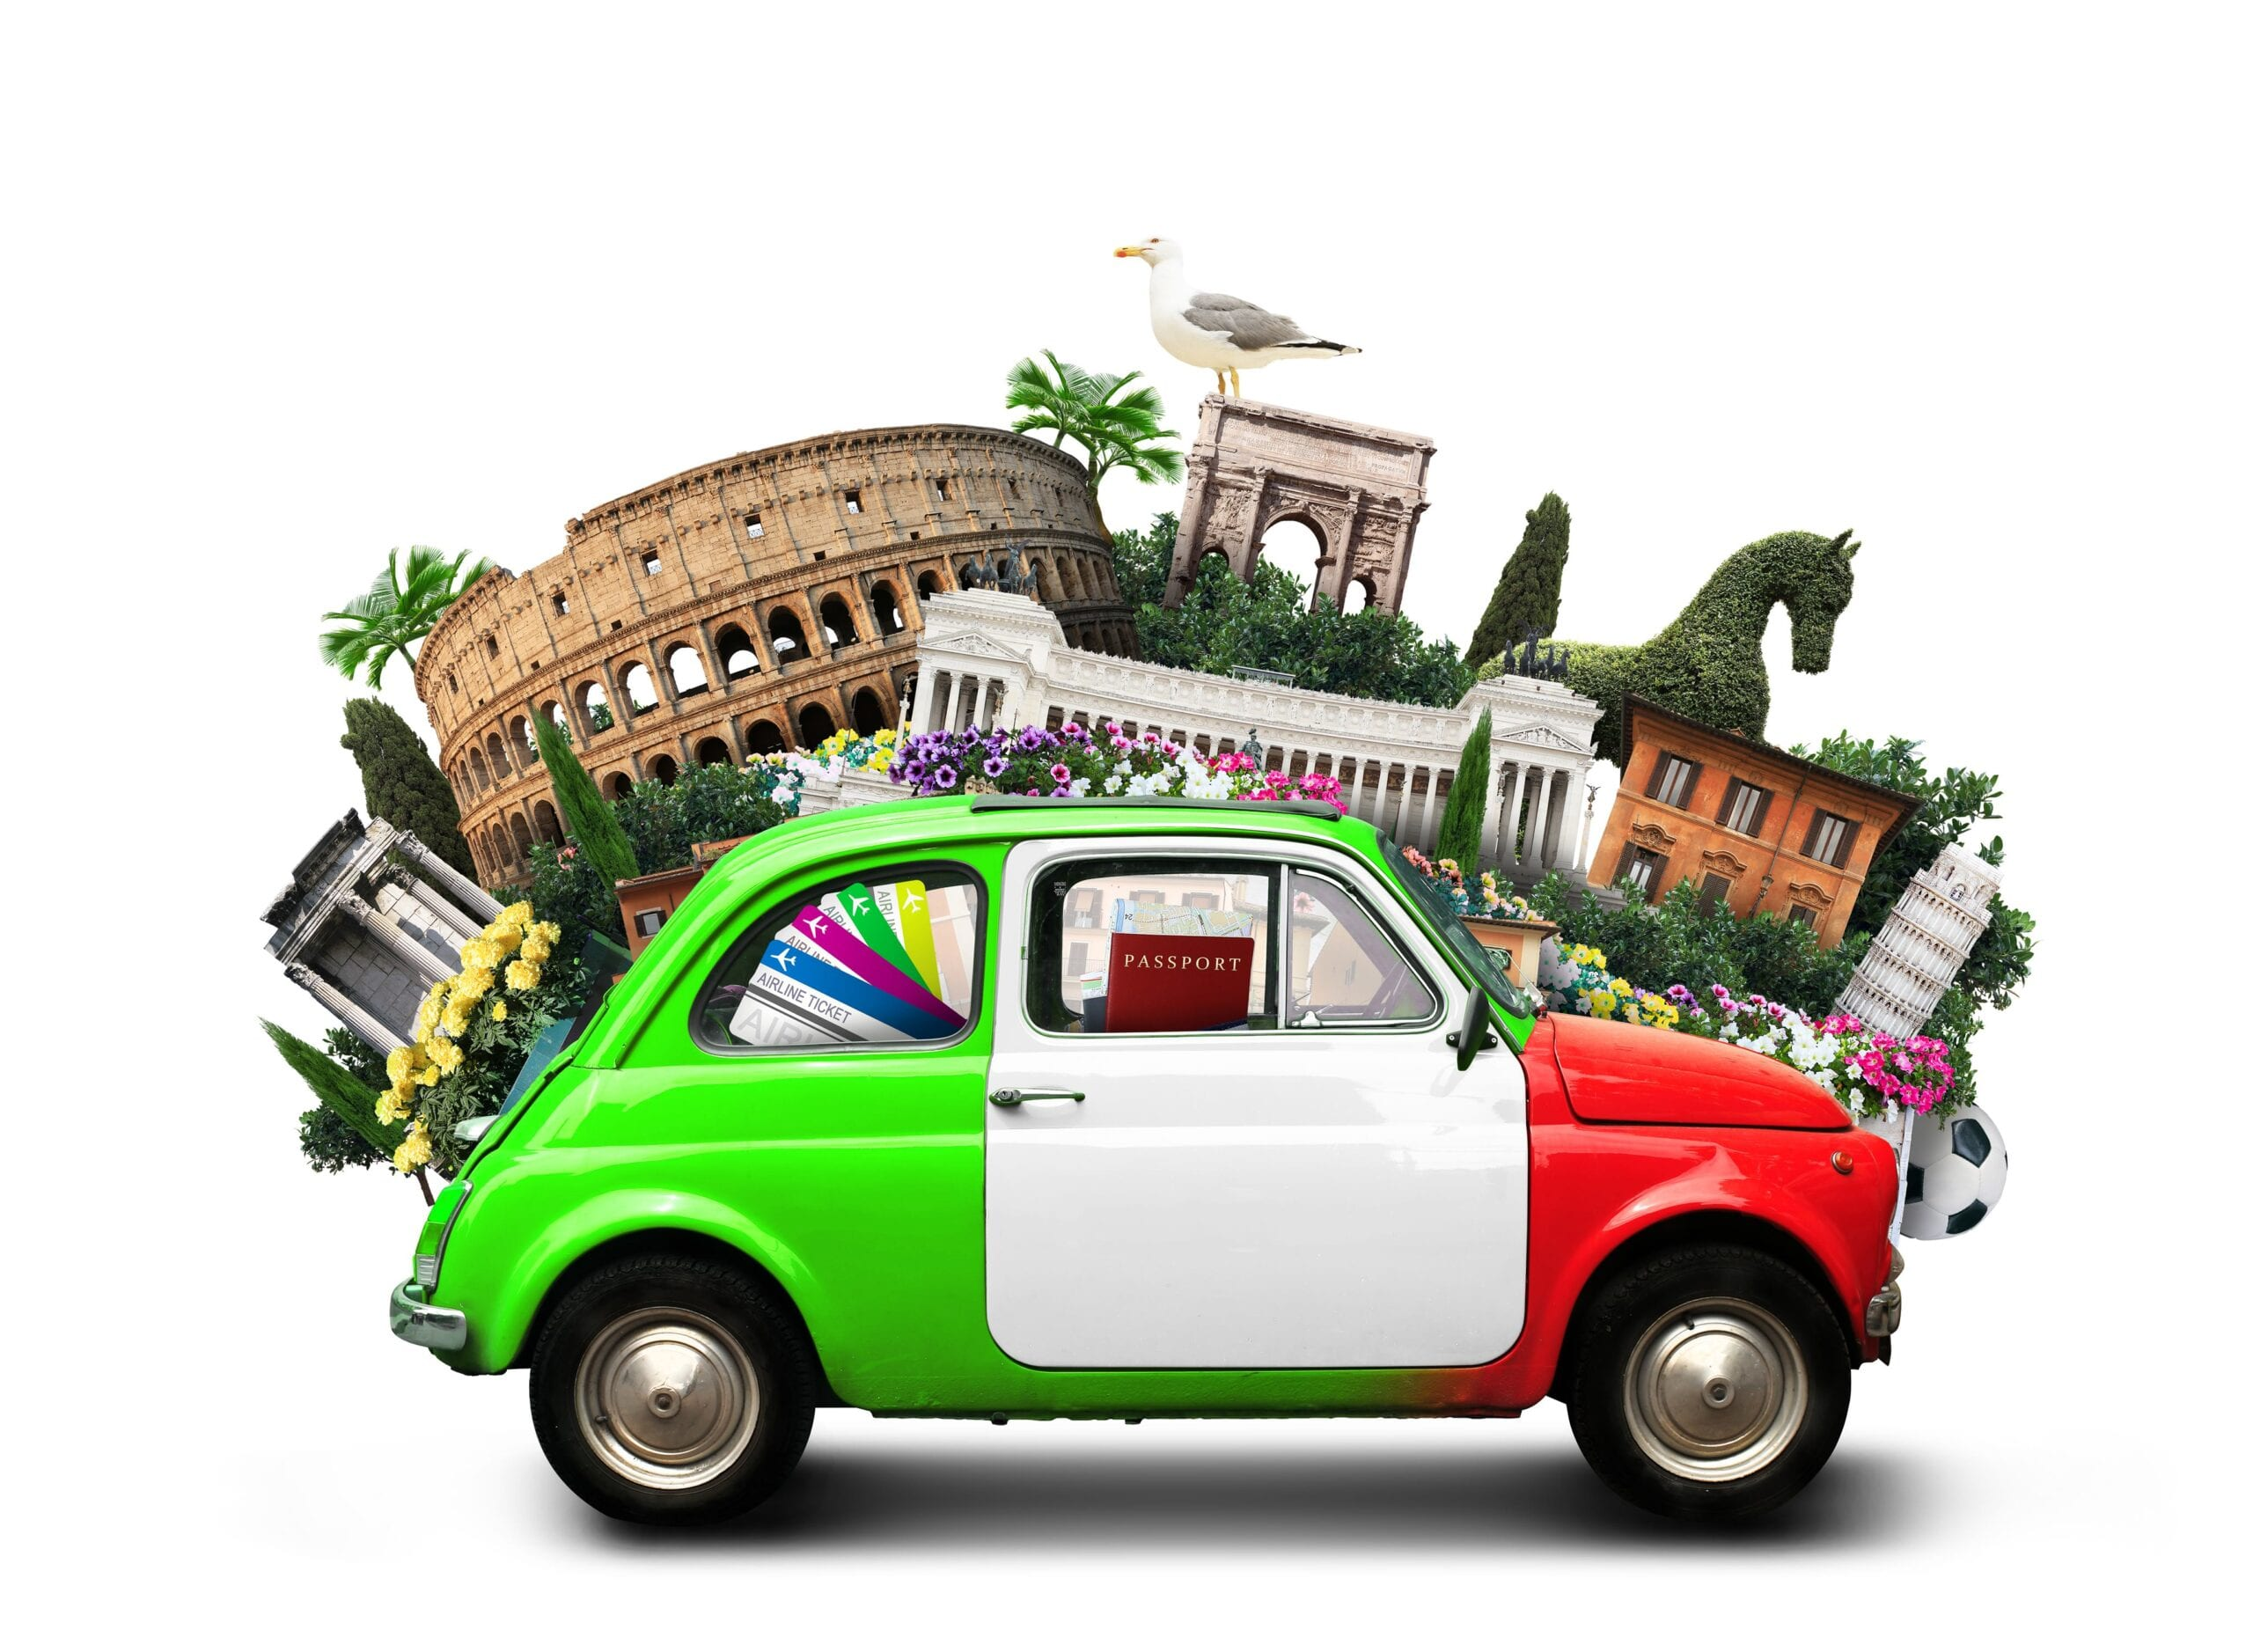 image of Italian vintage car with Italian colors and famous landmarks in Italy behind it.